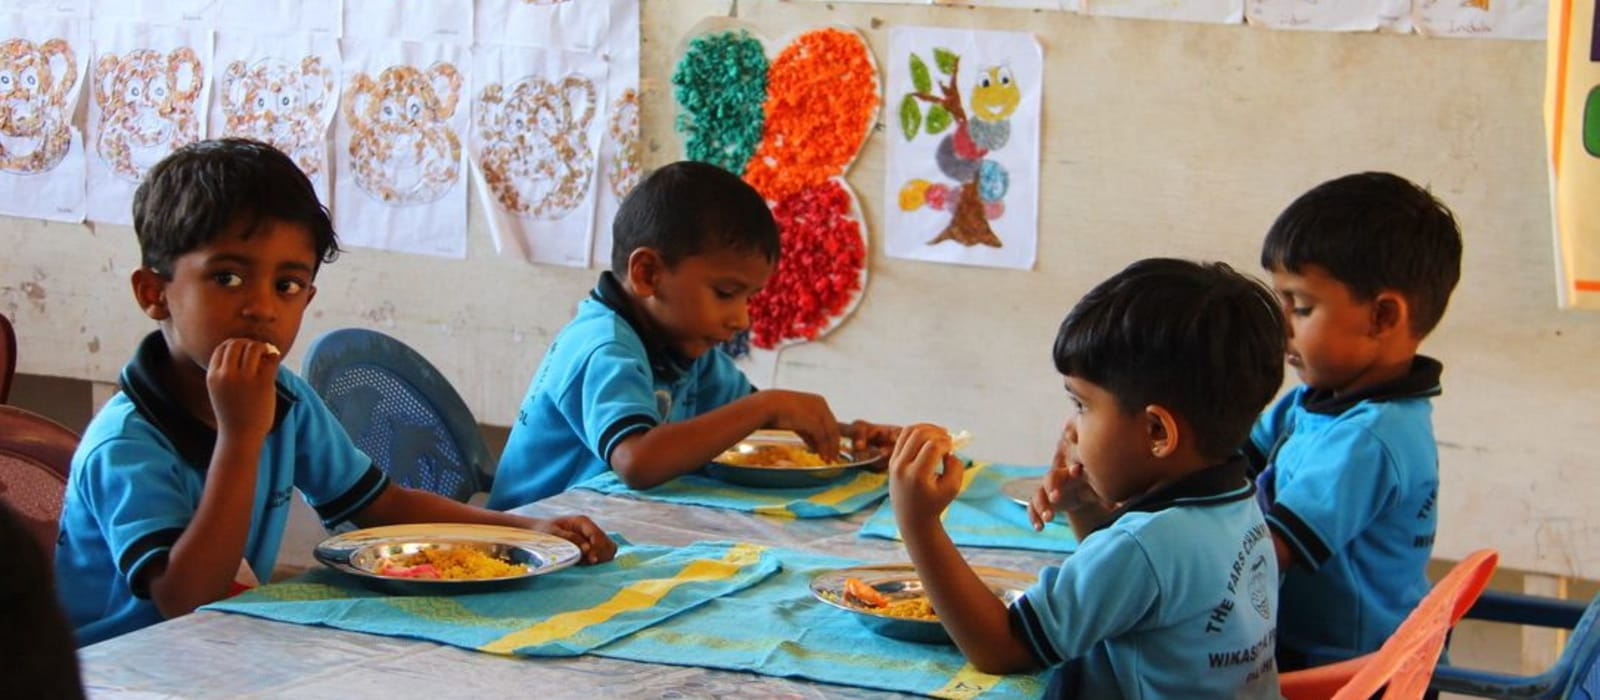 Pre-school children eating their meal at school